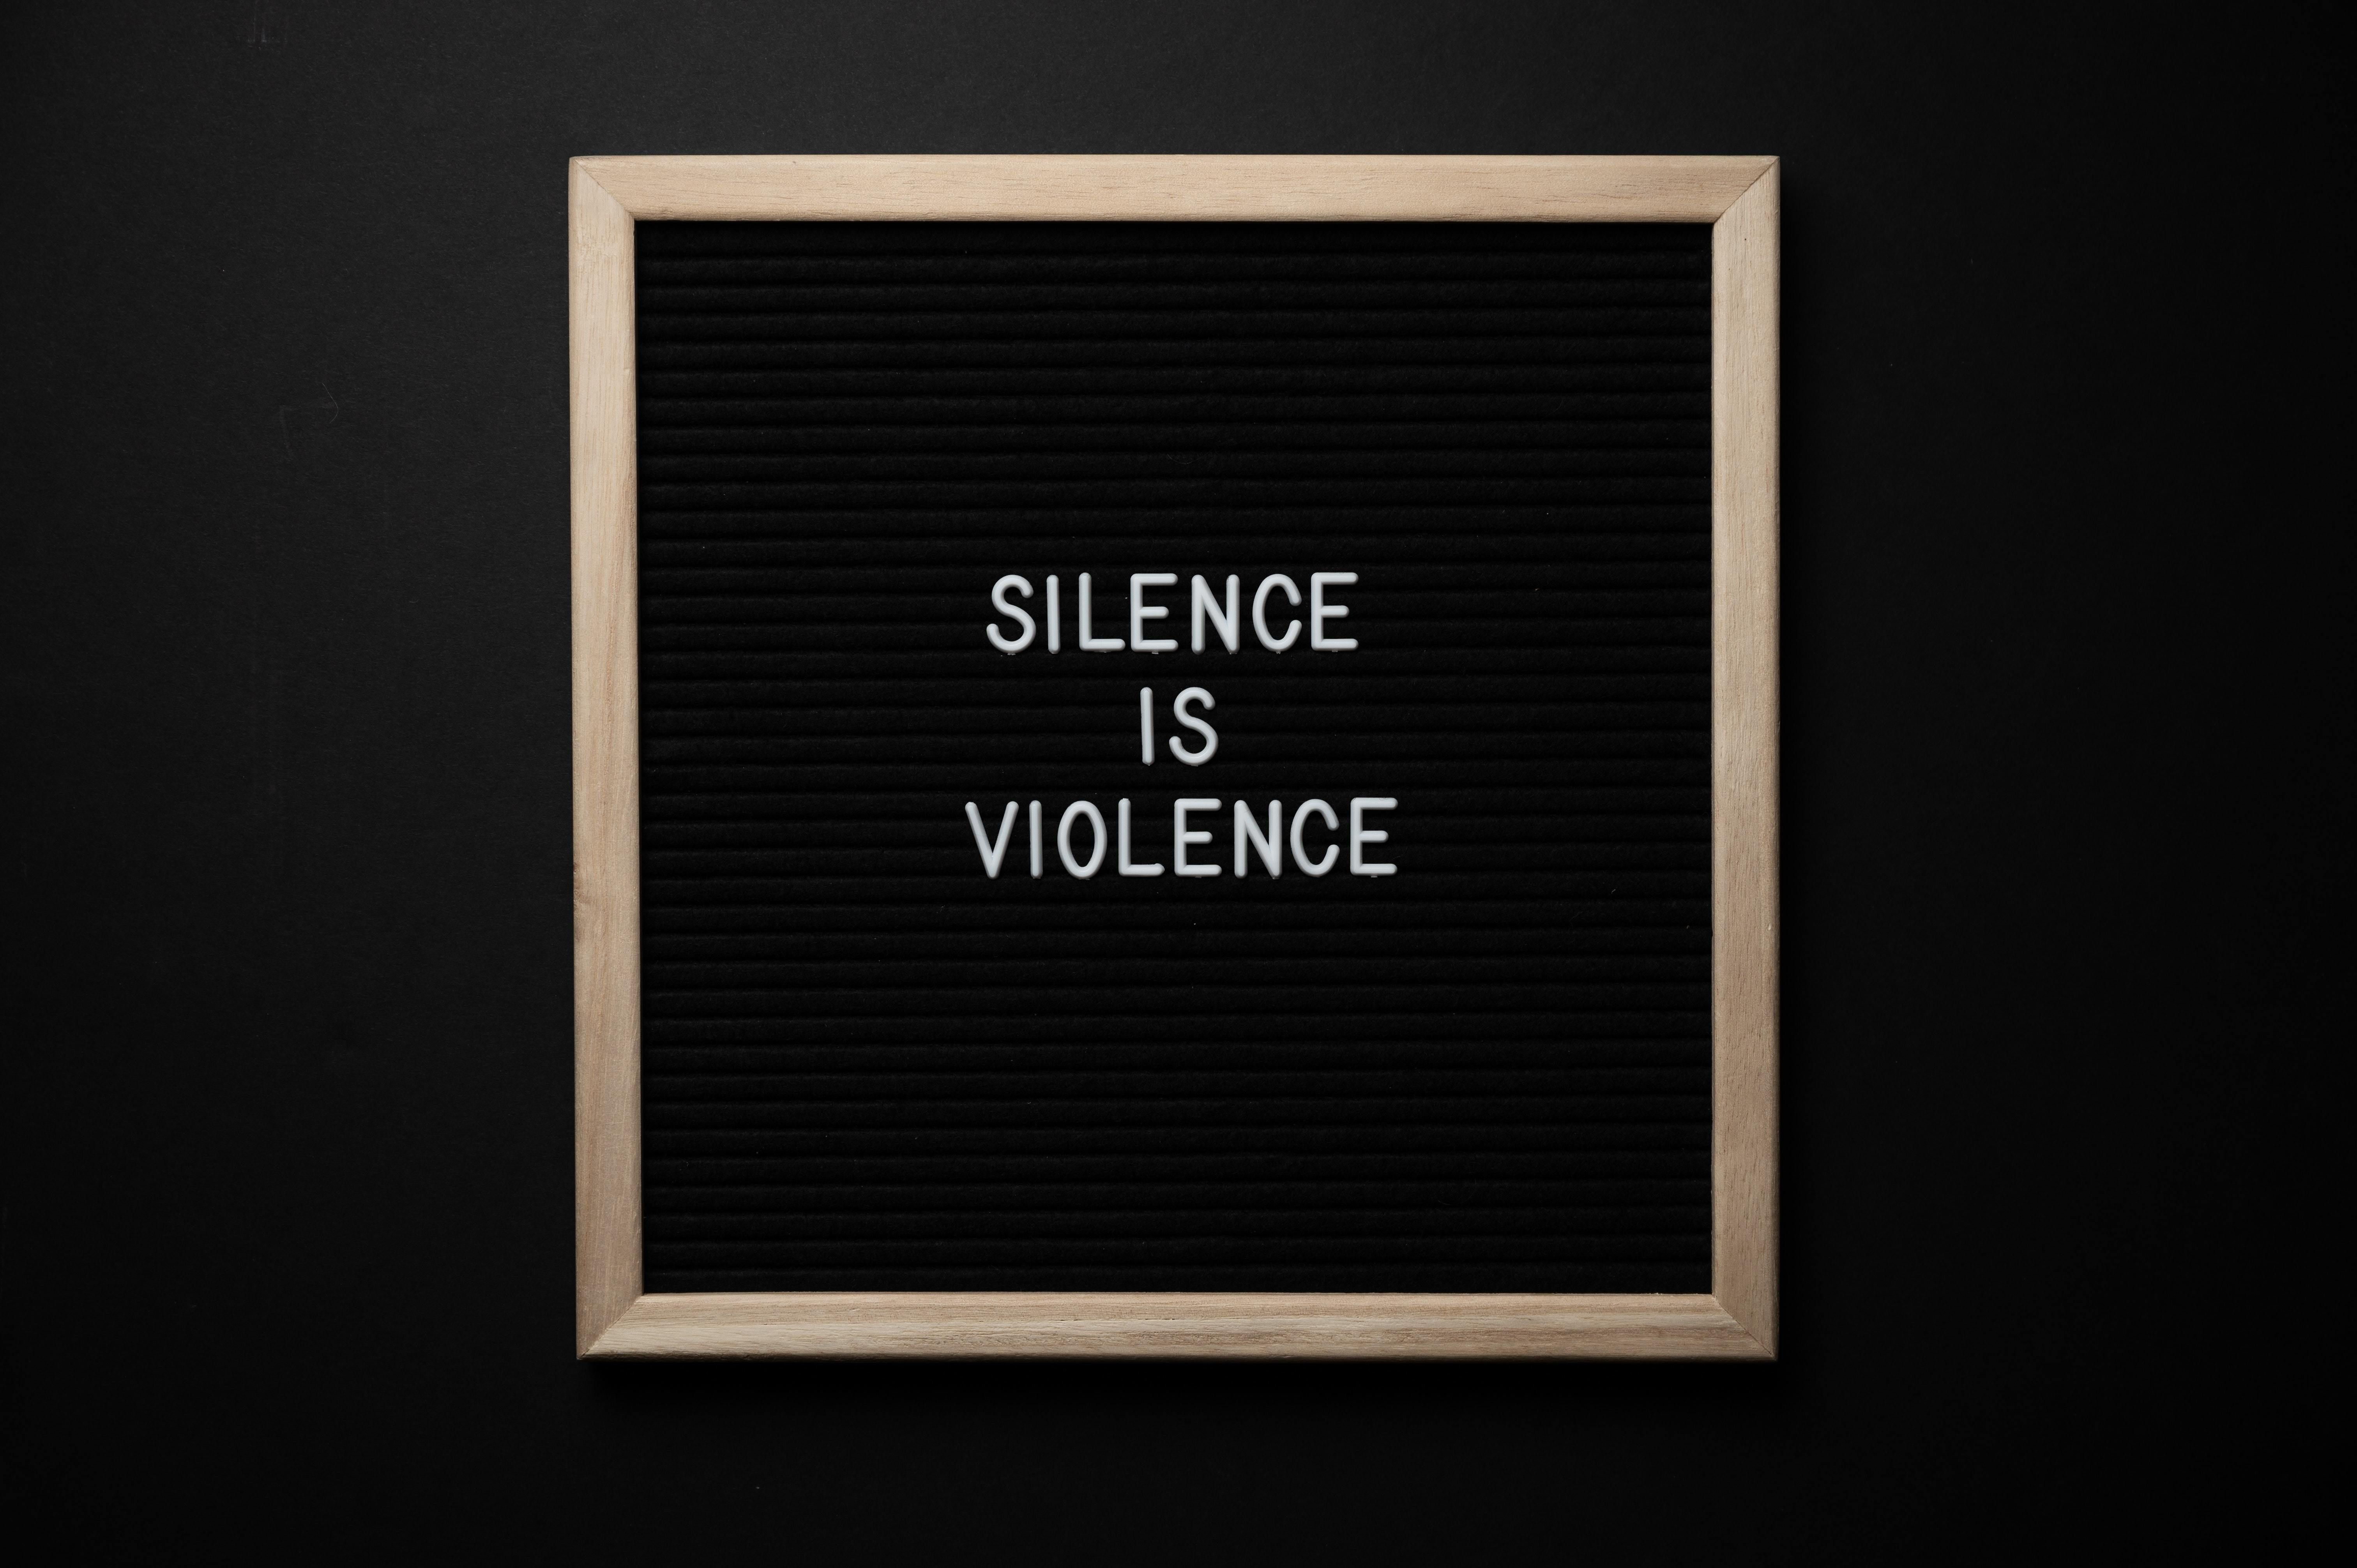 Intersectionality in Youth Violence: Continued